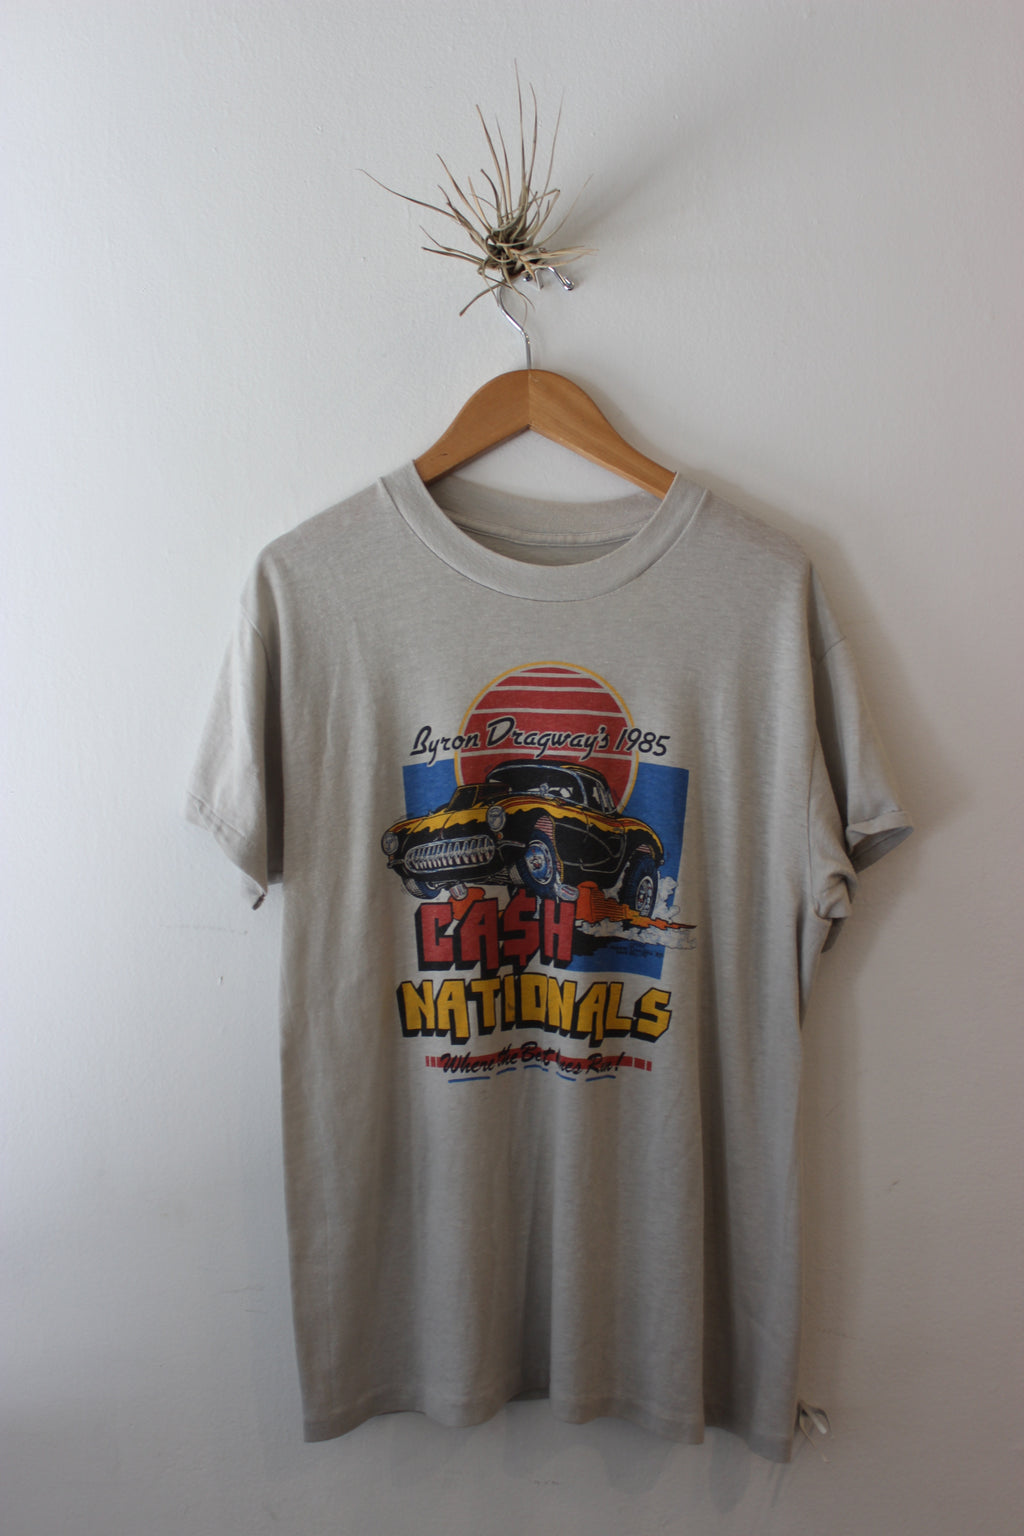 Vintage 1985 Byron Dragways Cash Nationals Tee